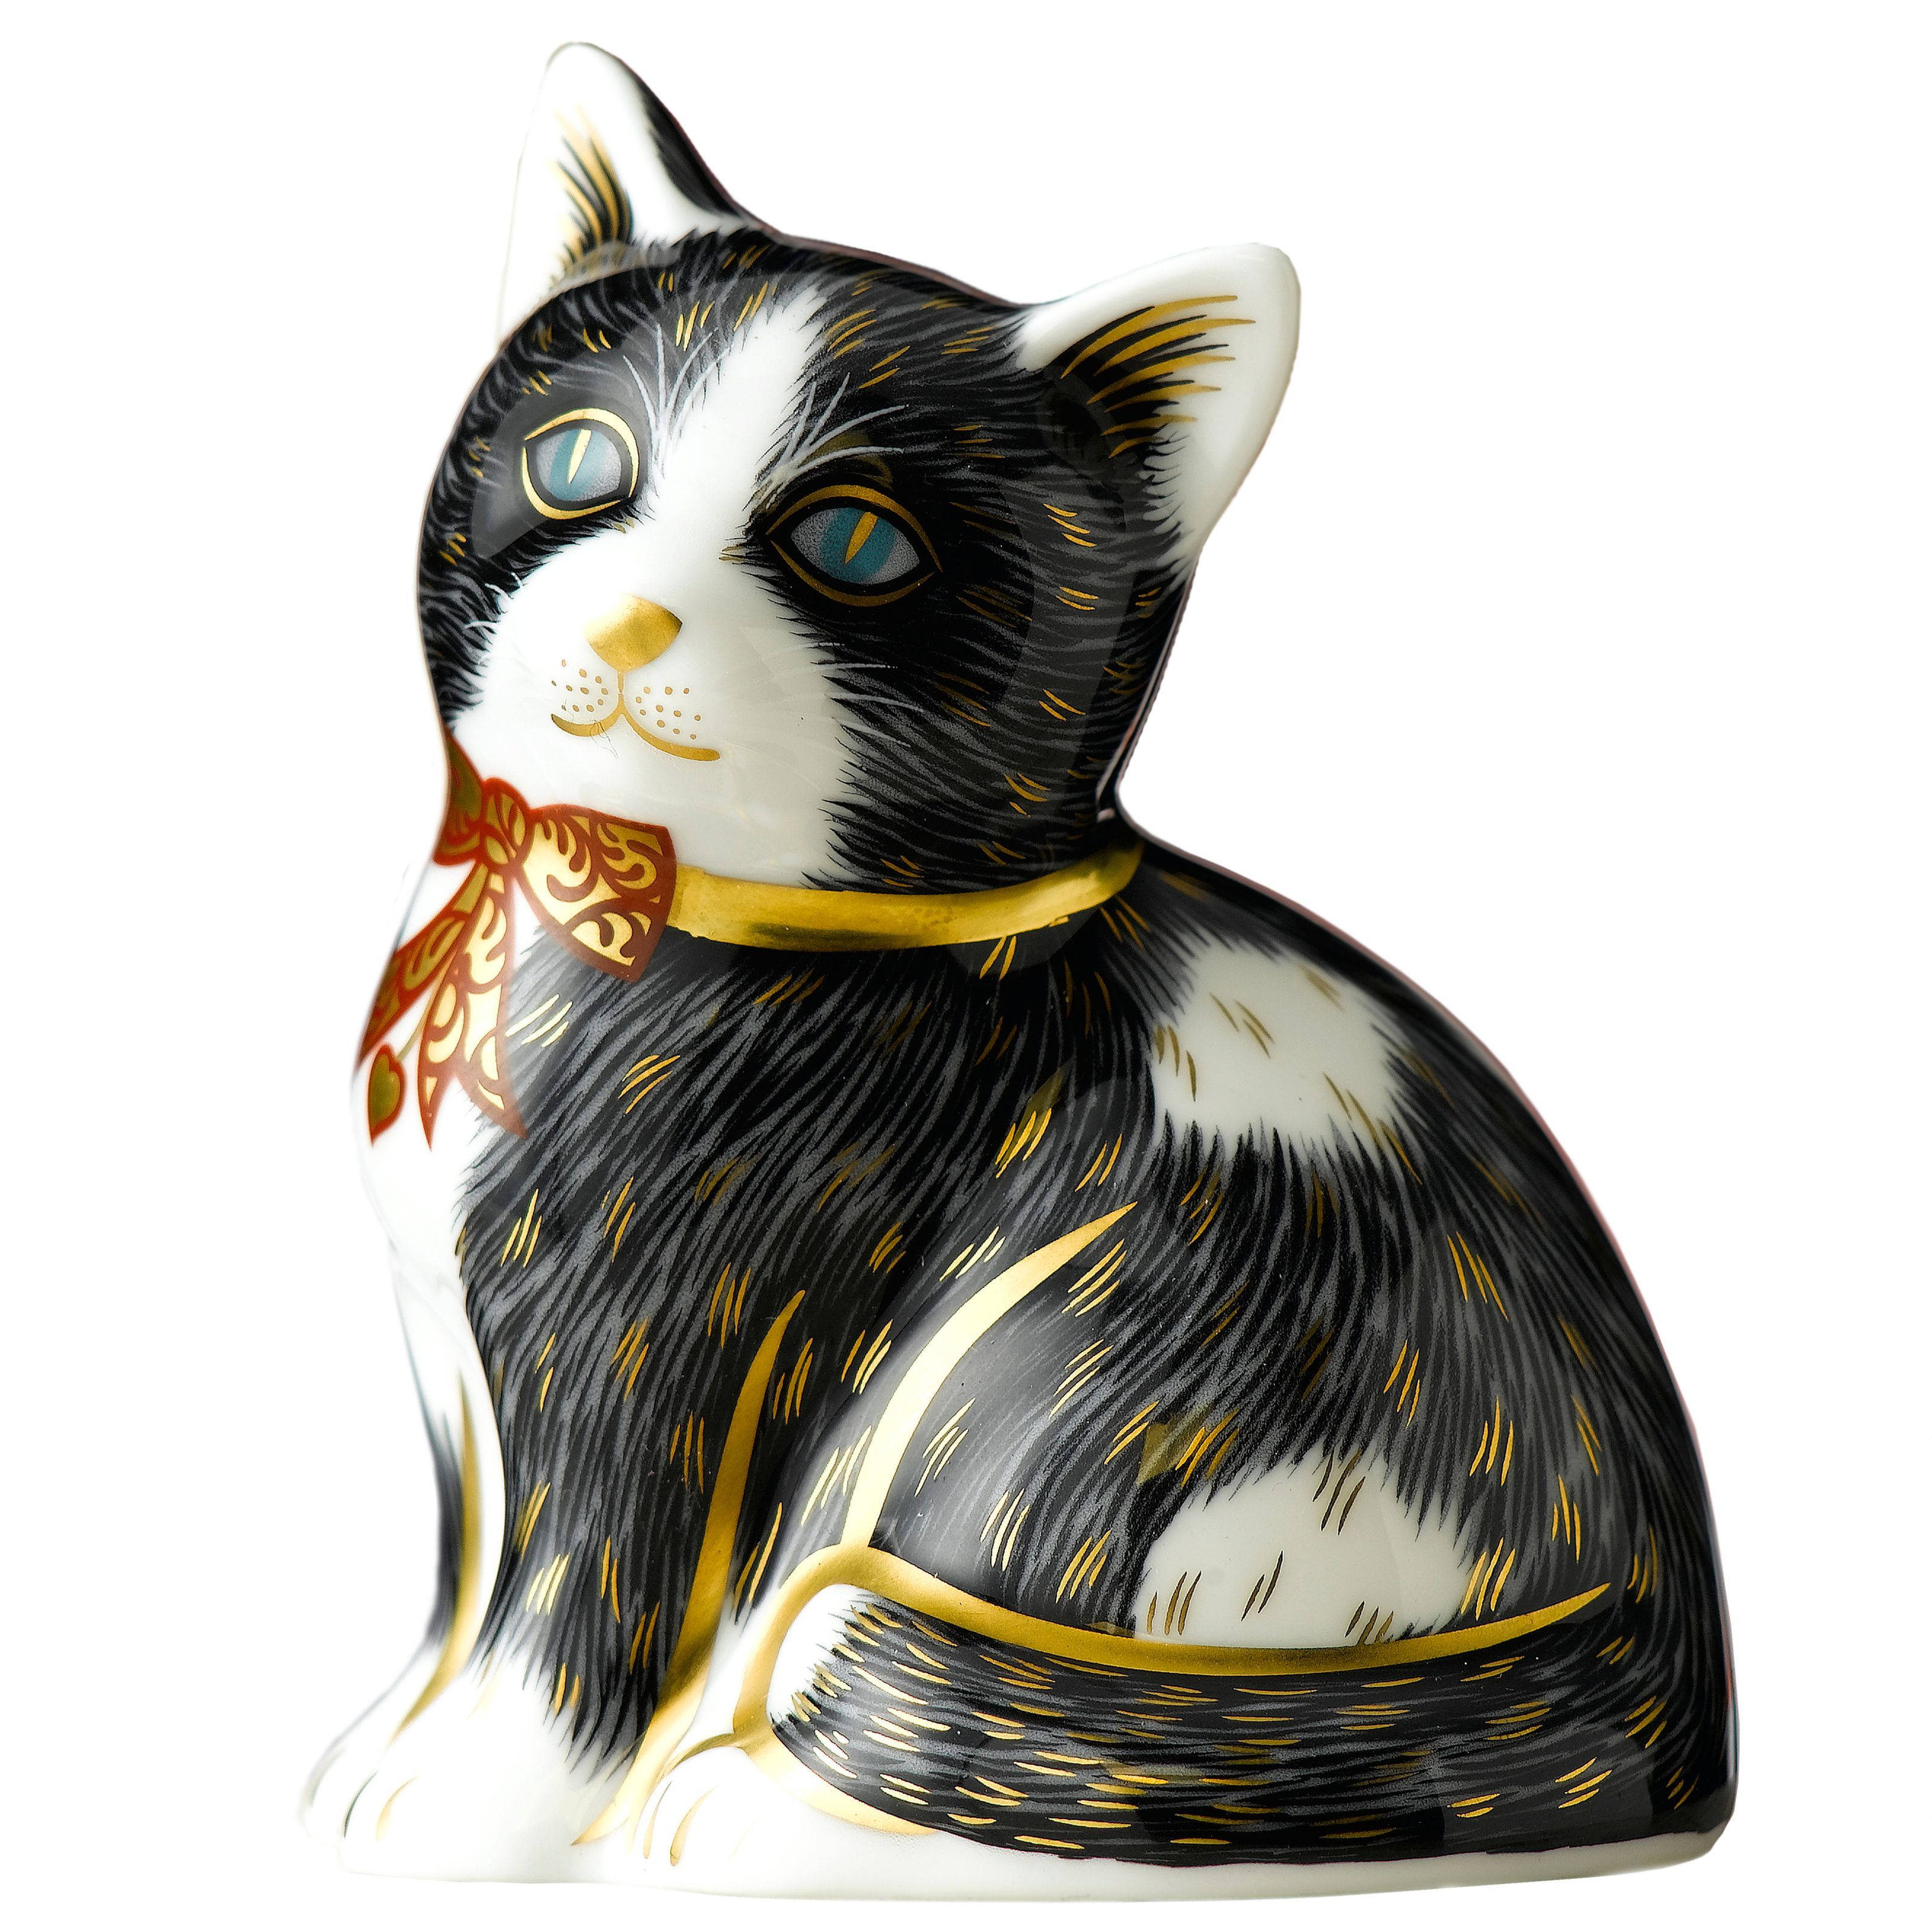 Image of Royal Crown Derby Black & white kitten paperweight